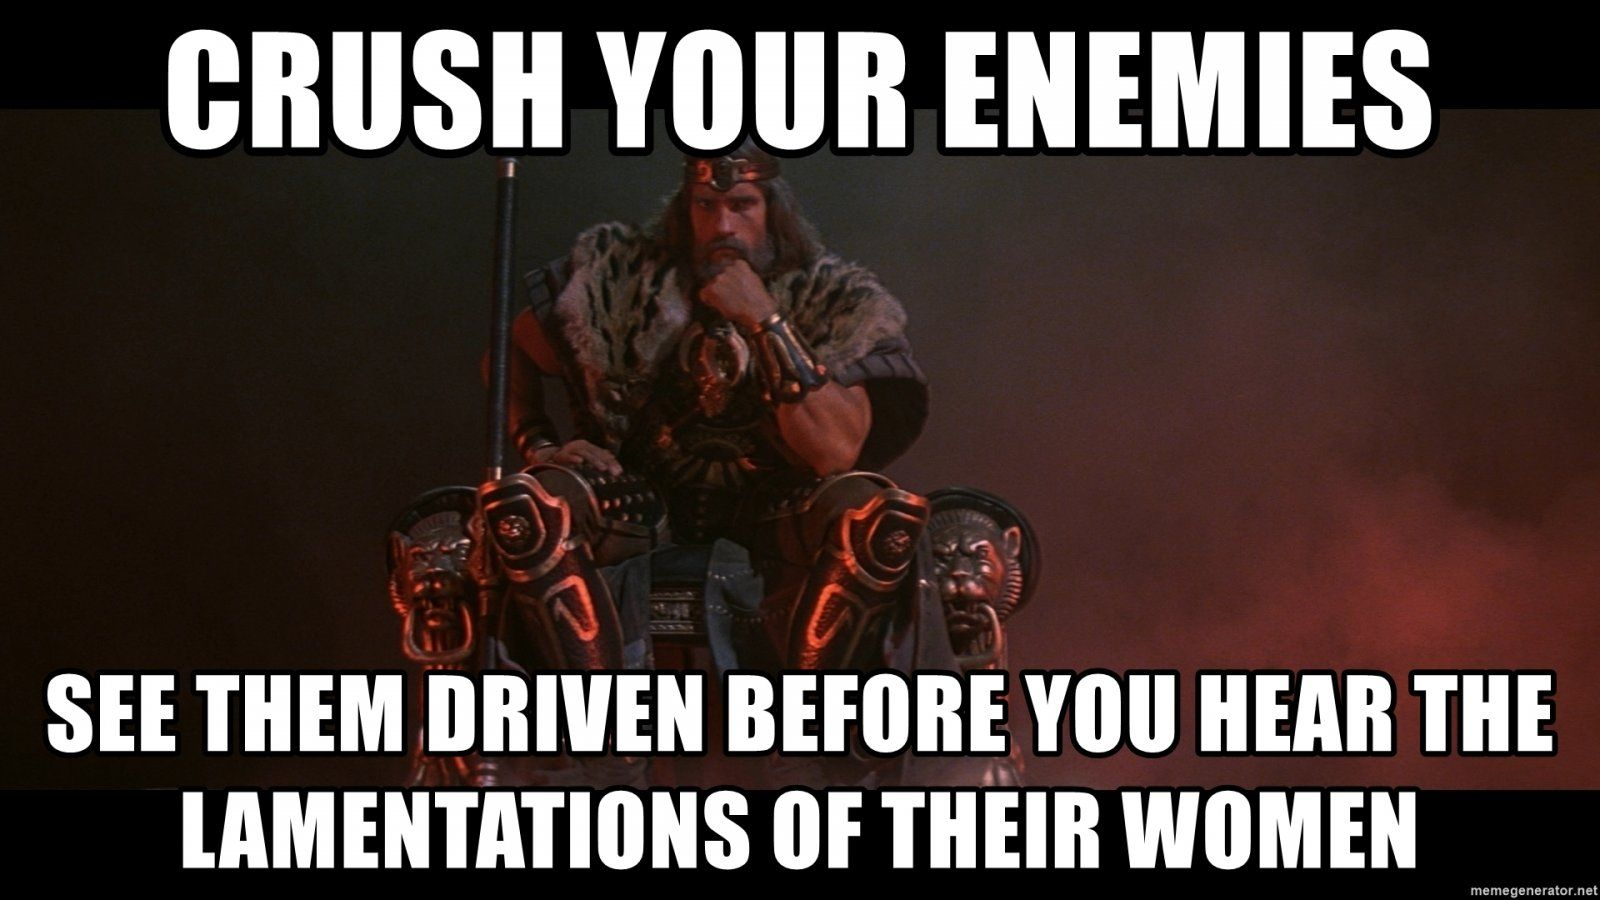 crush-your-enemies-see-them-driven-before-you-hear-the-lamentations-of-their-women.jpg